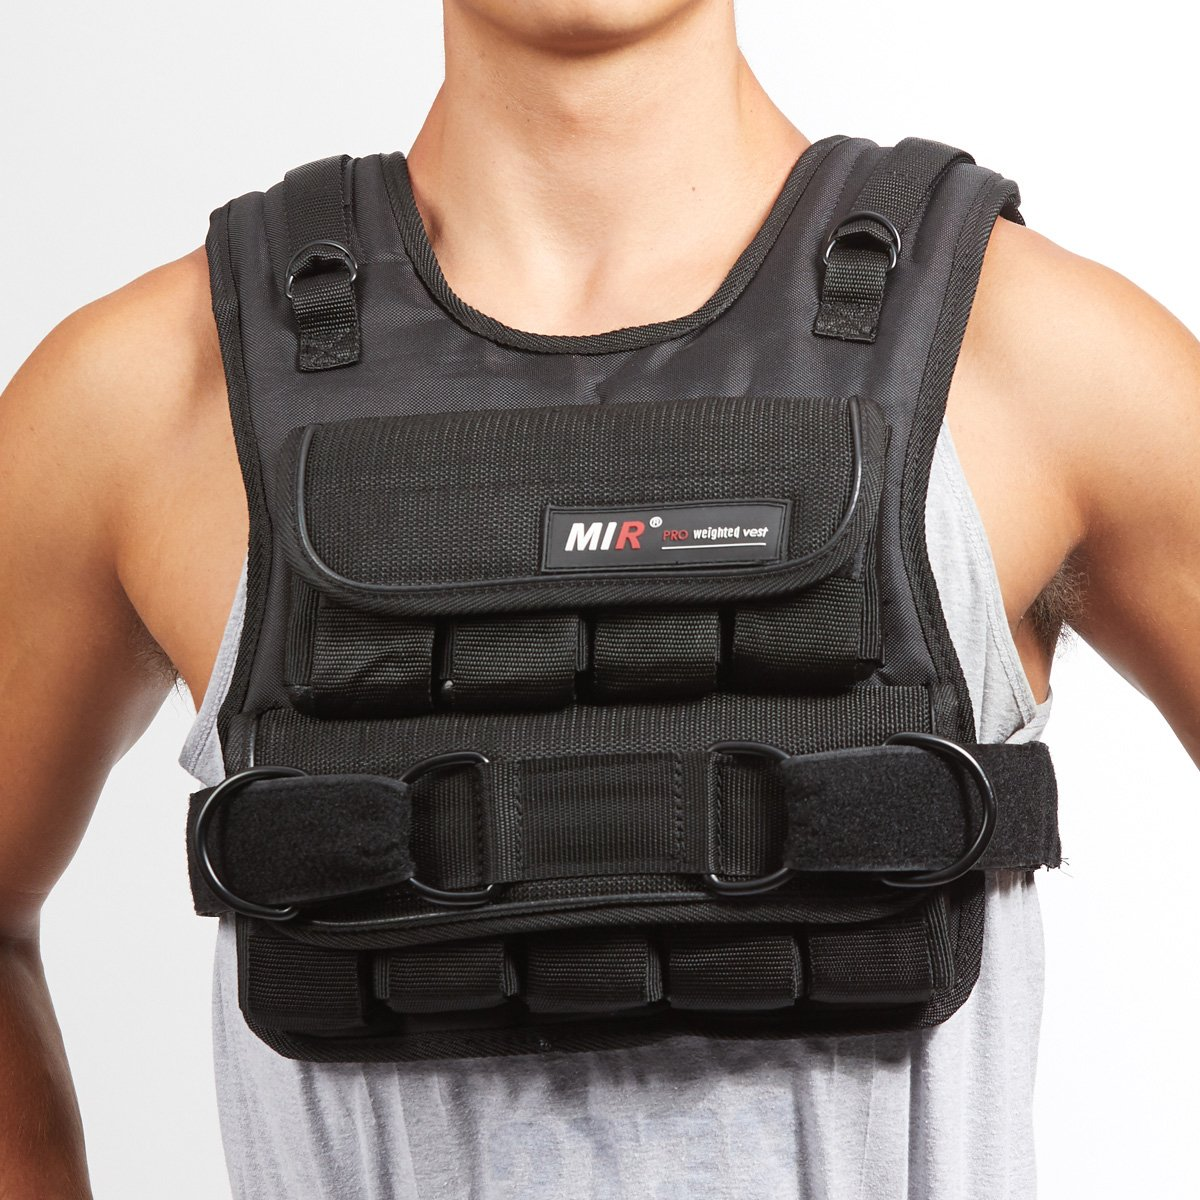 Mir Adjustable Weighted Vest, 30 lb by Mir (Image #2)